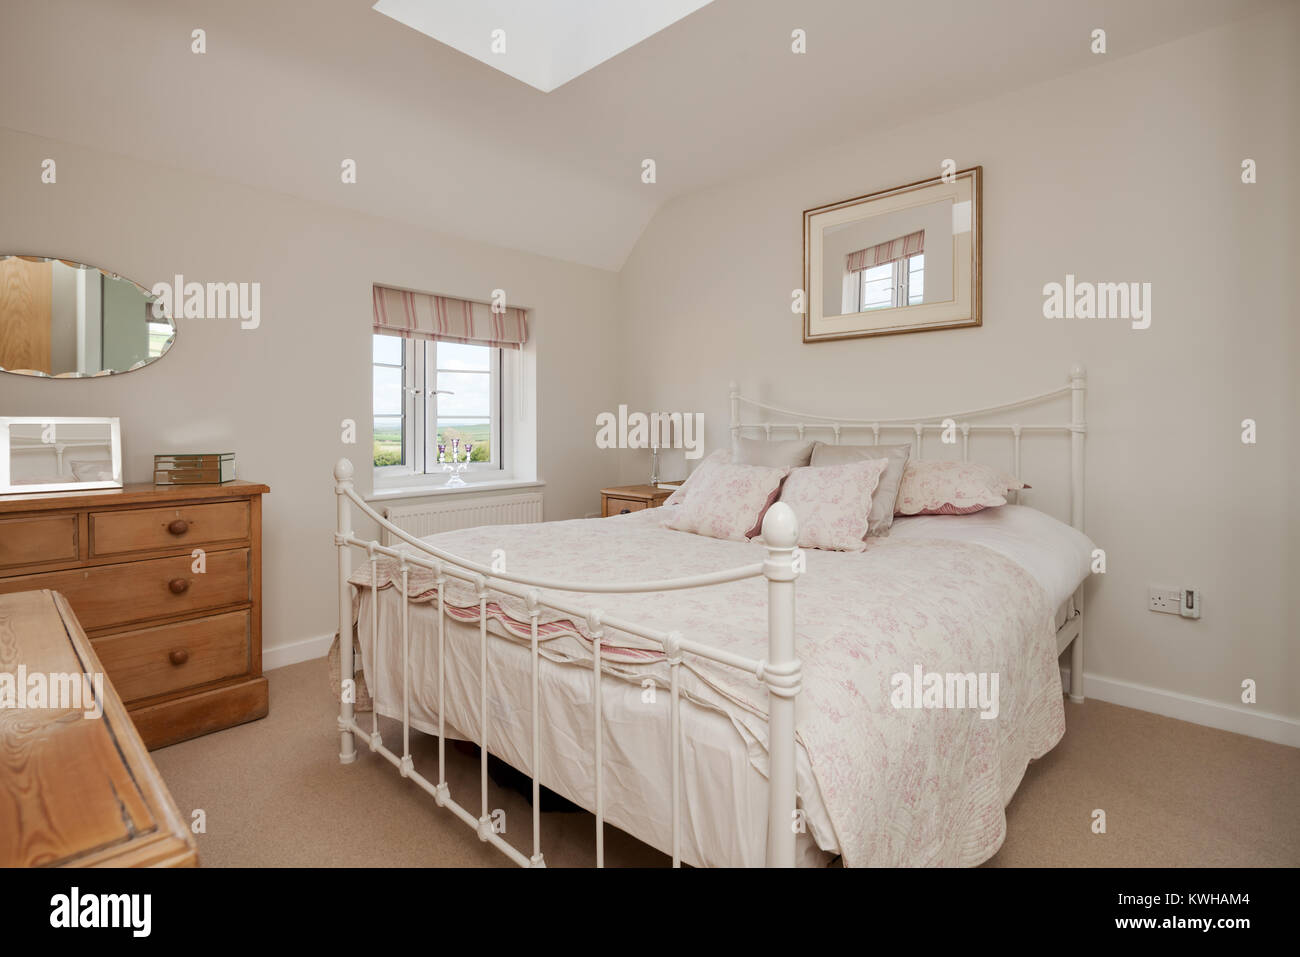 Traditional cottage style bedroom modestly dressed with floral pattern bedspread, painted wrought iron style bedstead, - Stock Image